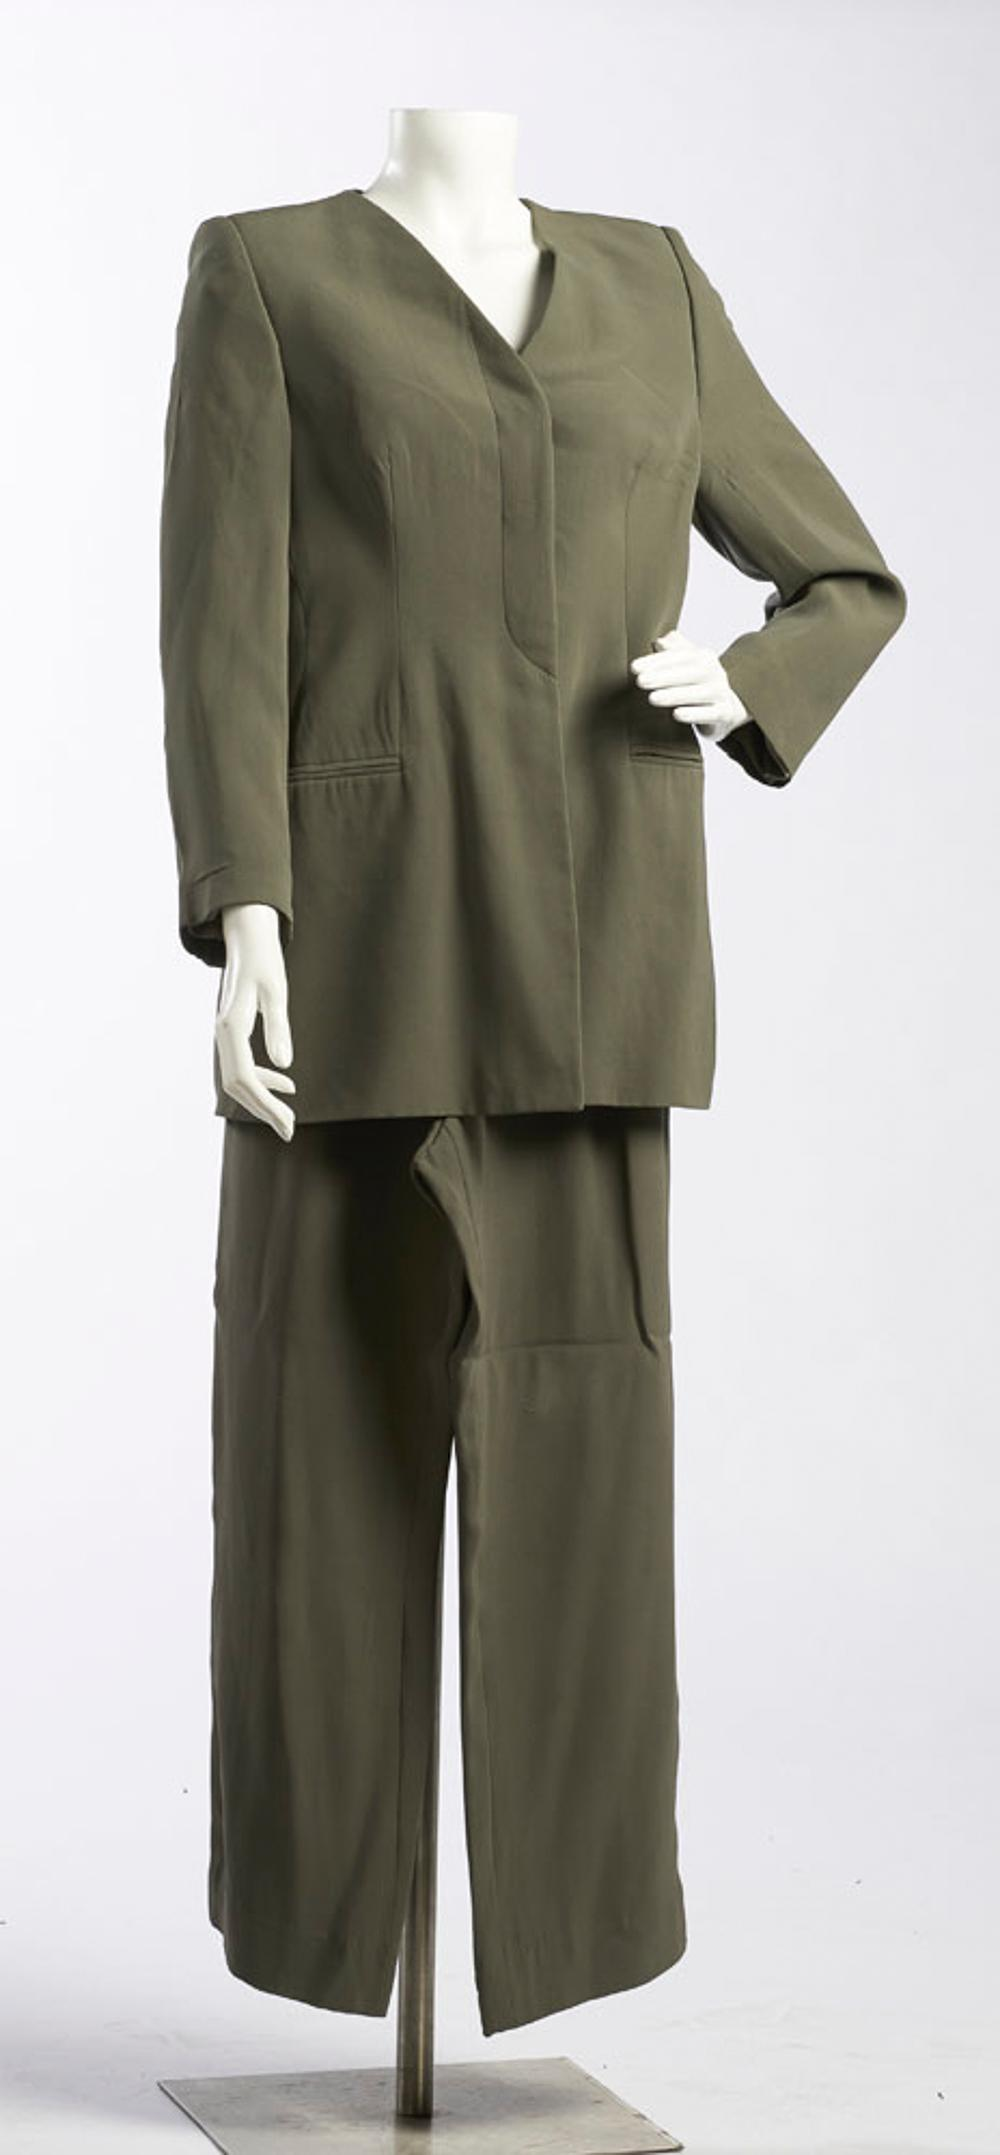 Giorgio Armani, jacket and pants in green tones